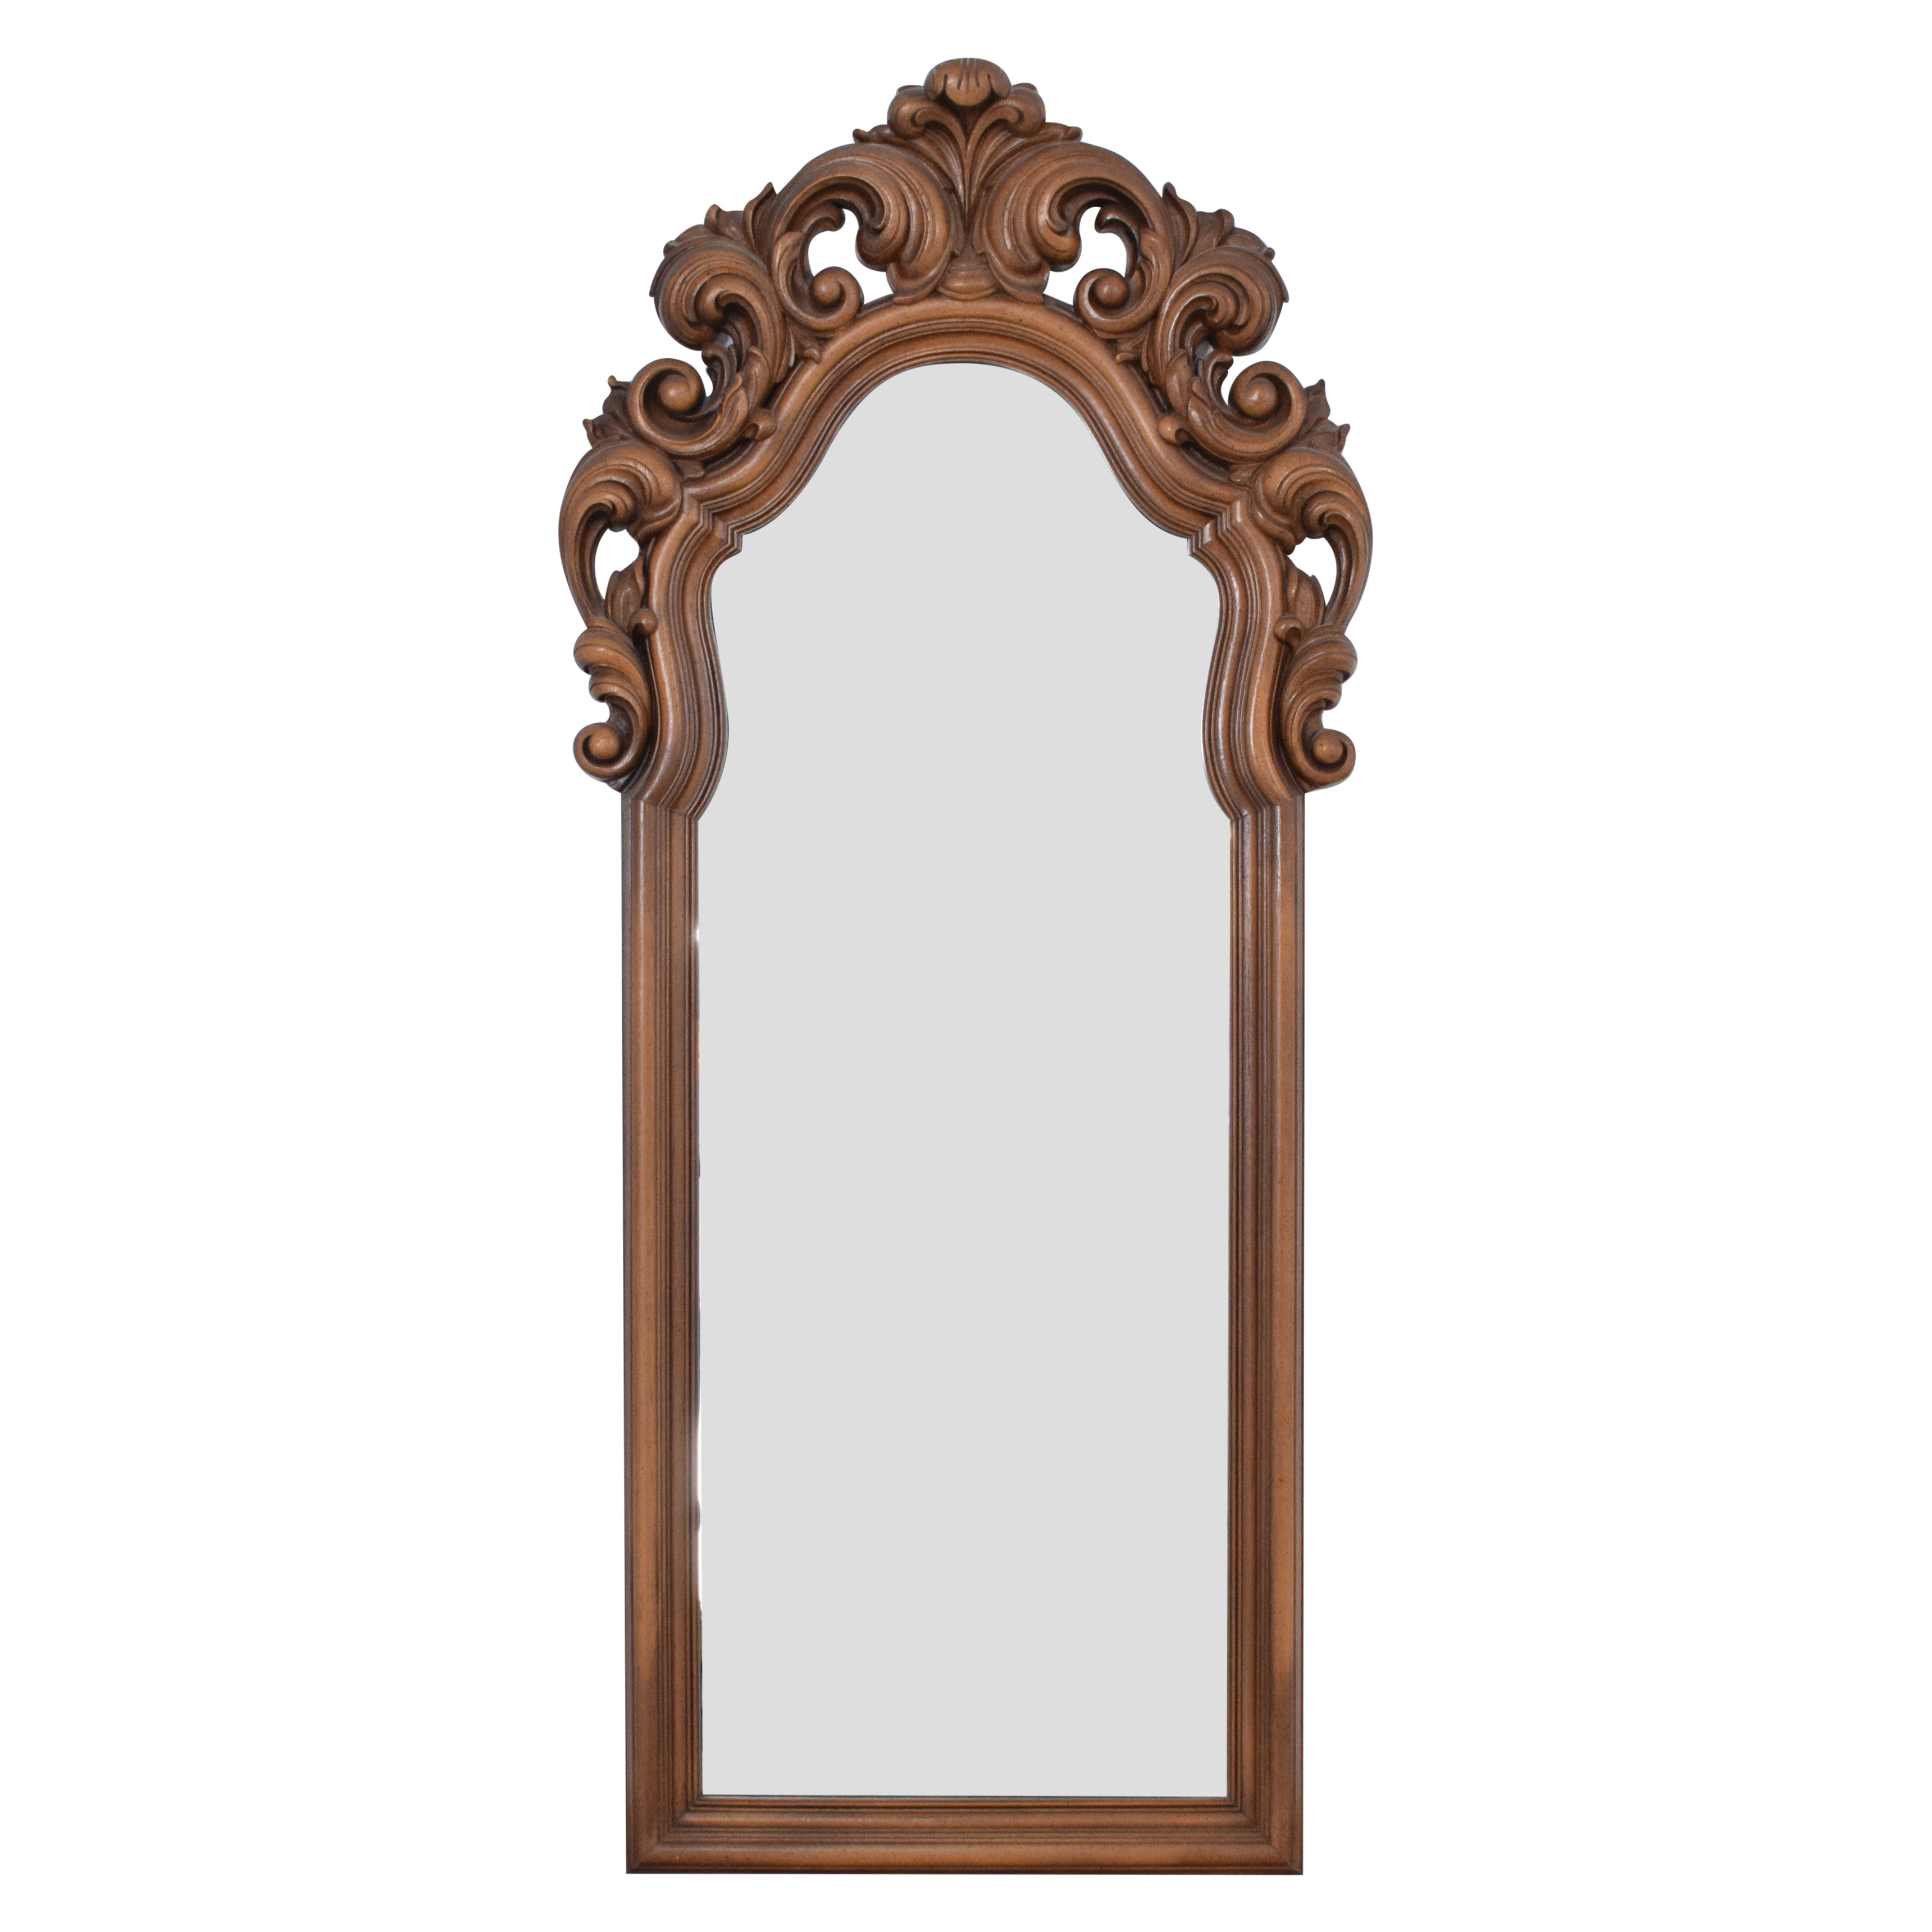 Broyhill Furniture Broyhill Venetian Style Accent Mirror price